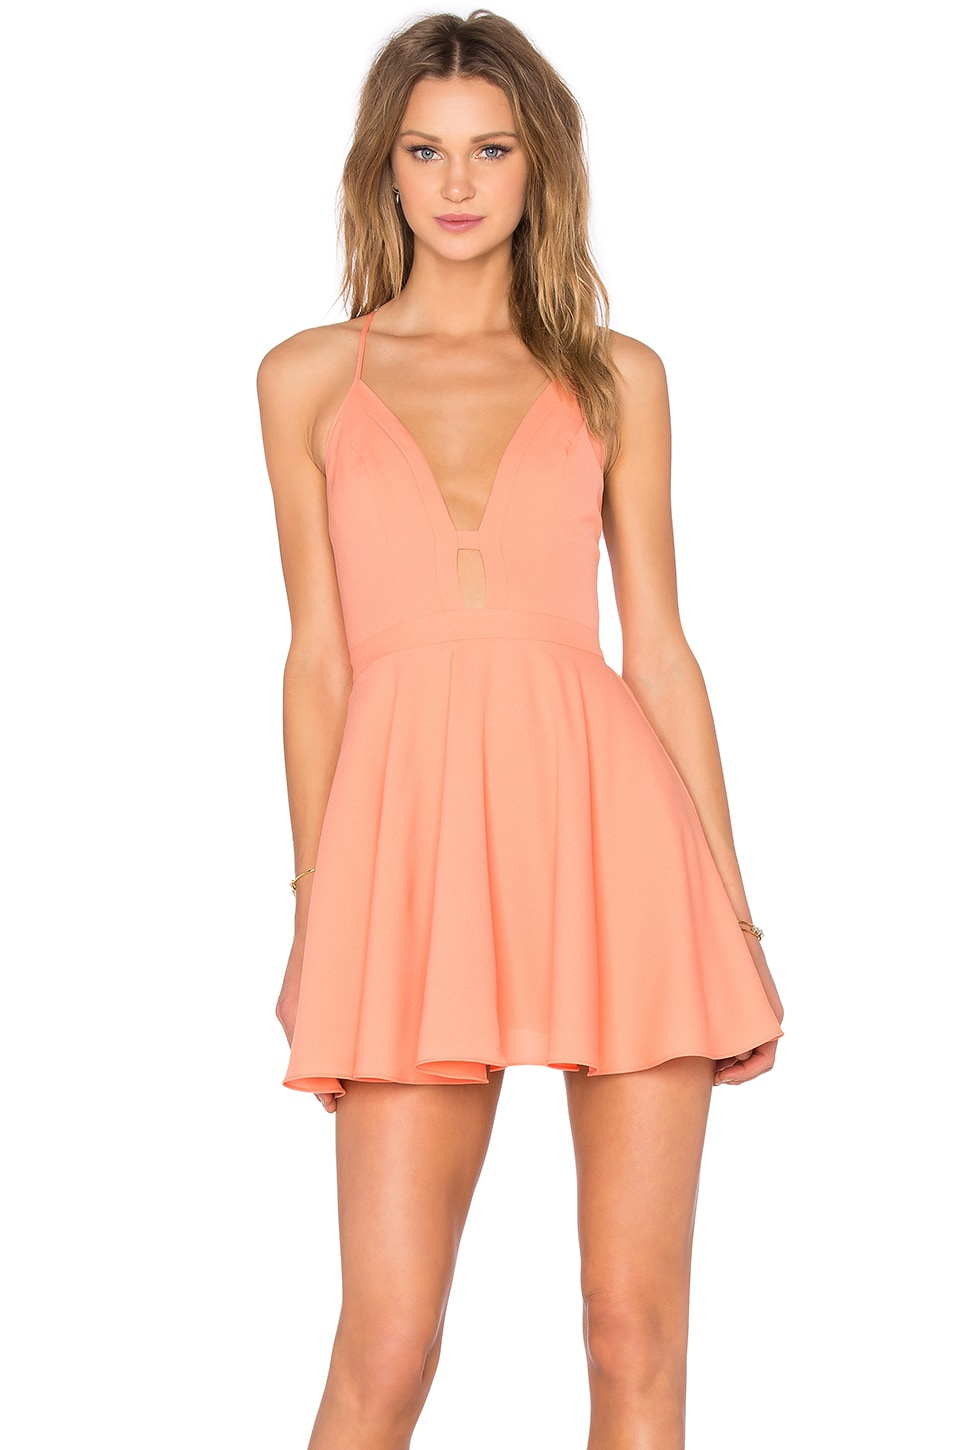 x Naven Twins Everytime Skater Dress